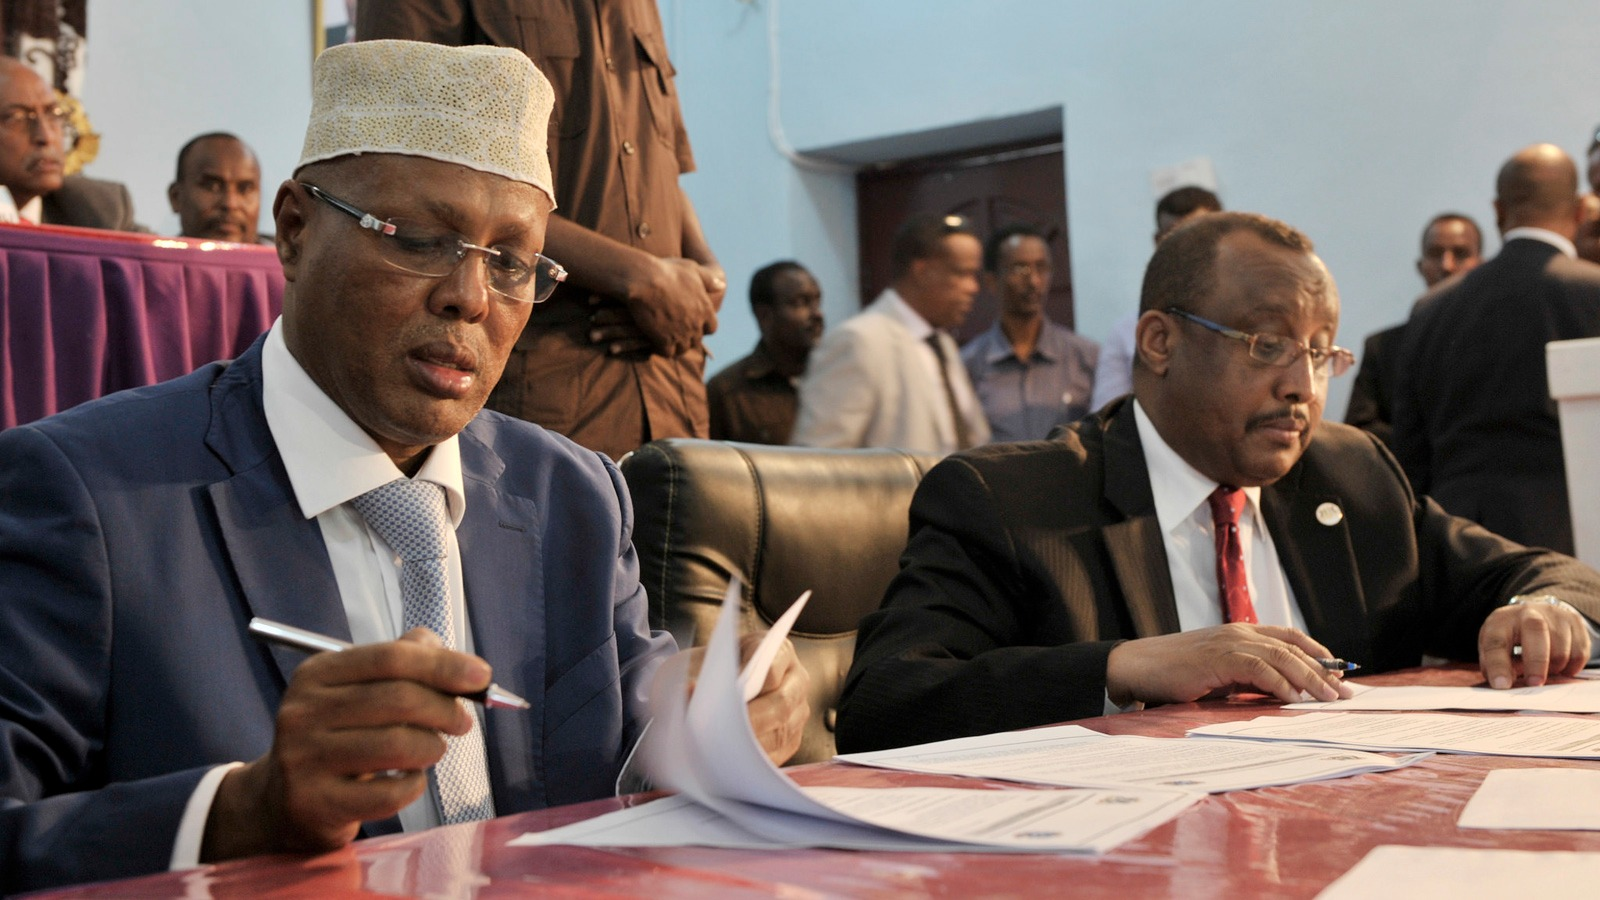 Somalia's Prime minister, Abdiweli Sheikh Ahmed, signs an agreement between the central government of Somalia and Puntland's government in Garowe, Puntland, October 14, 2014.